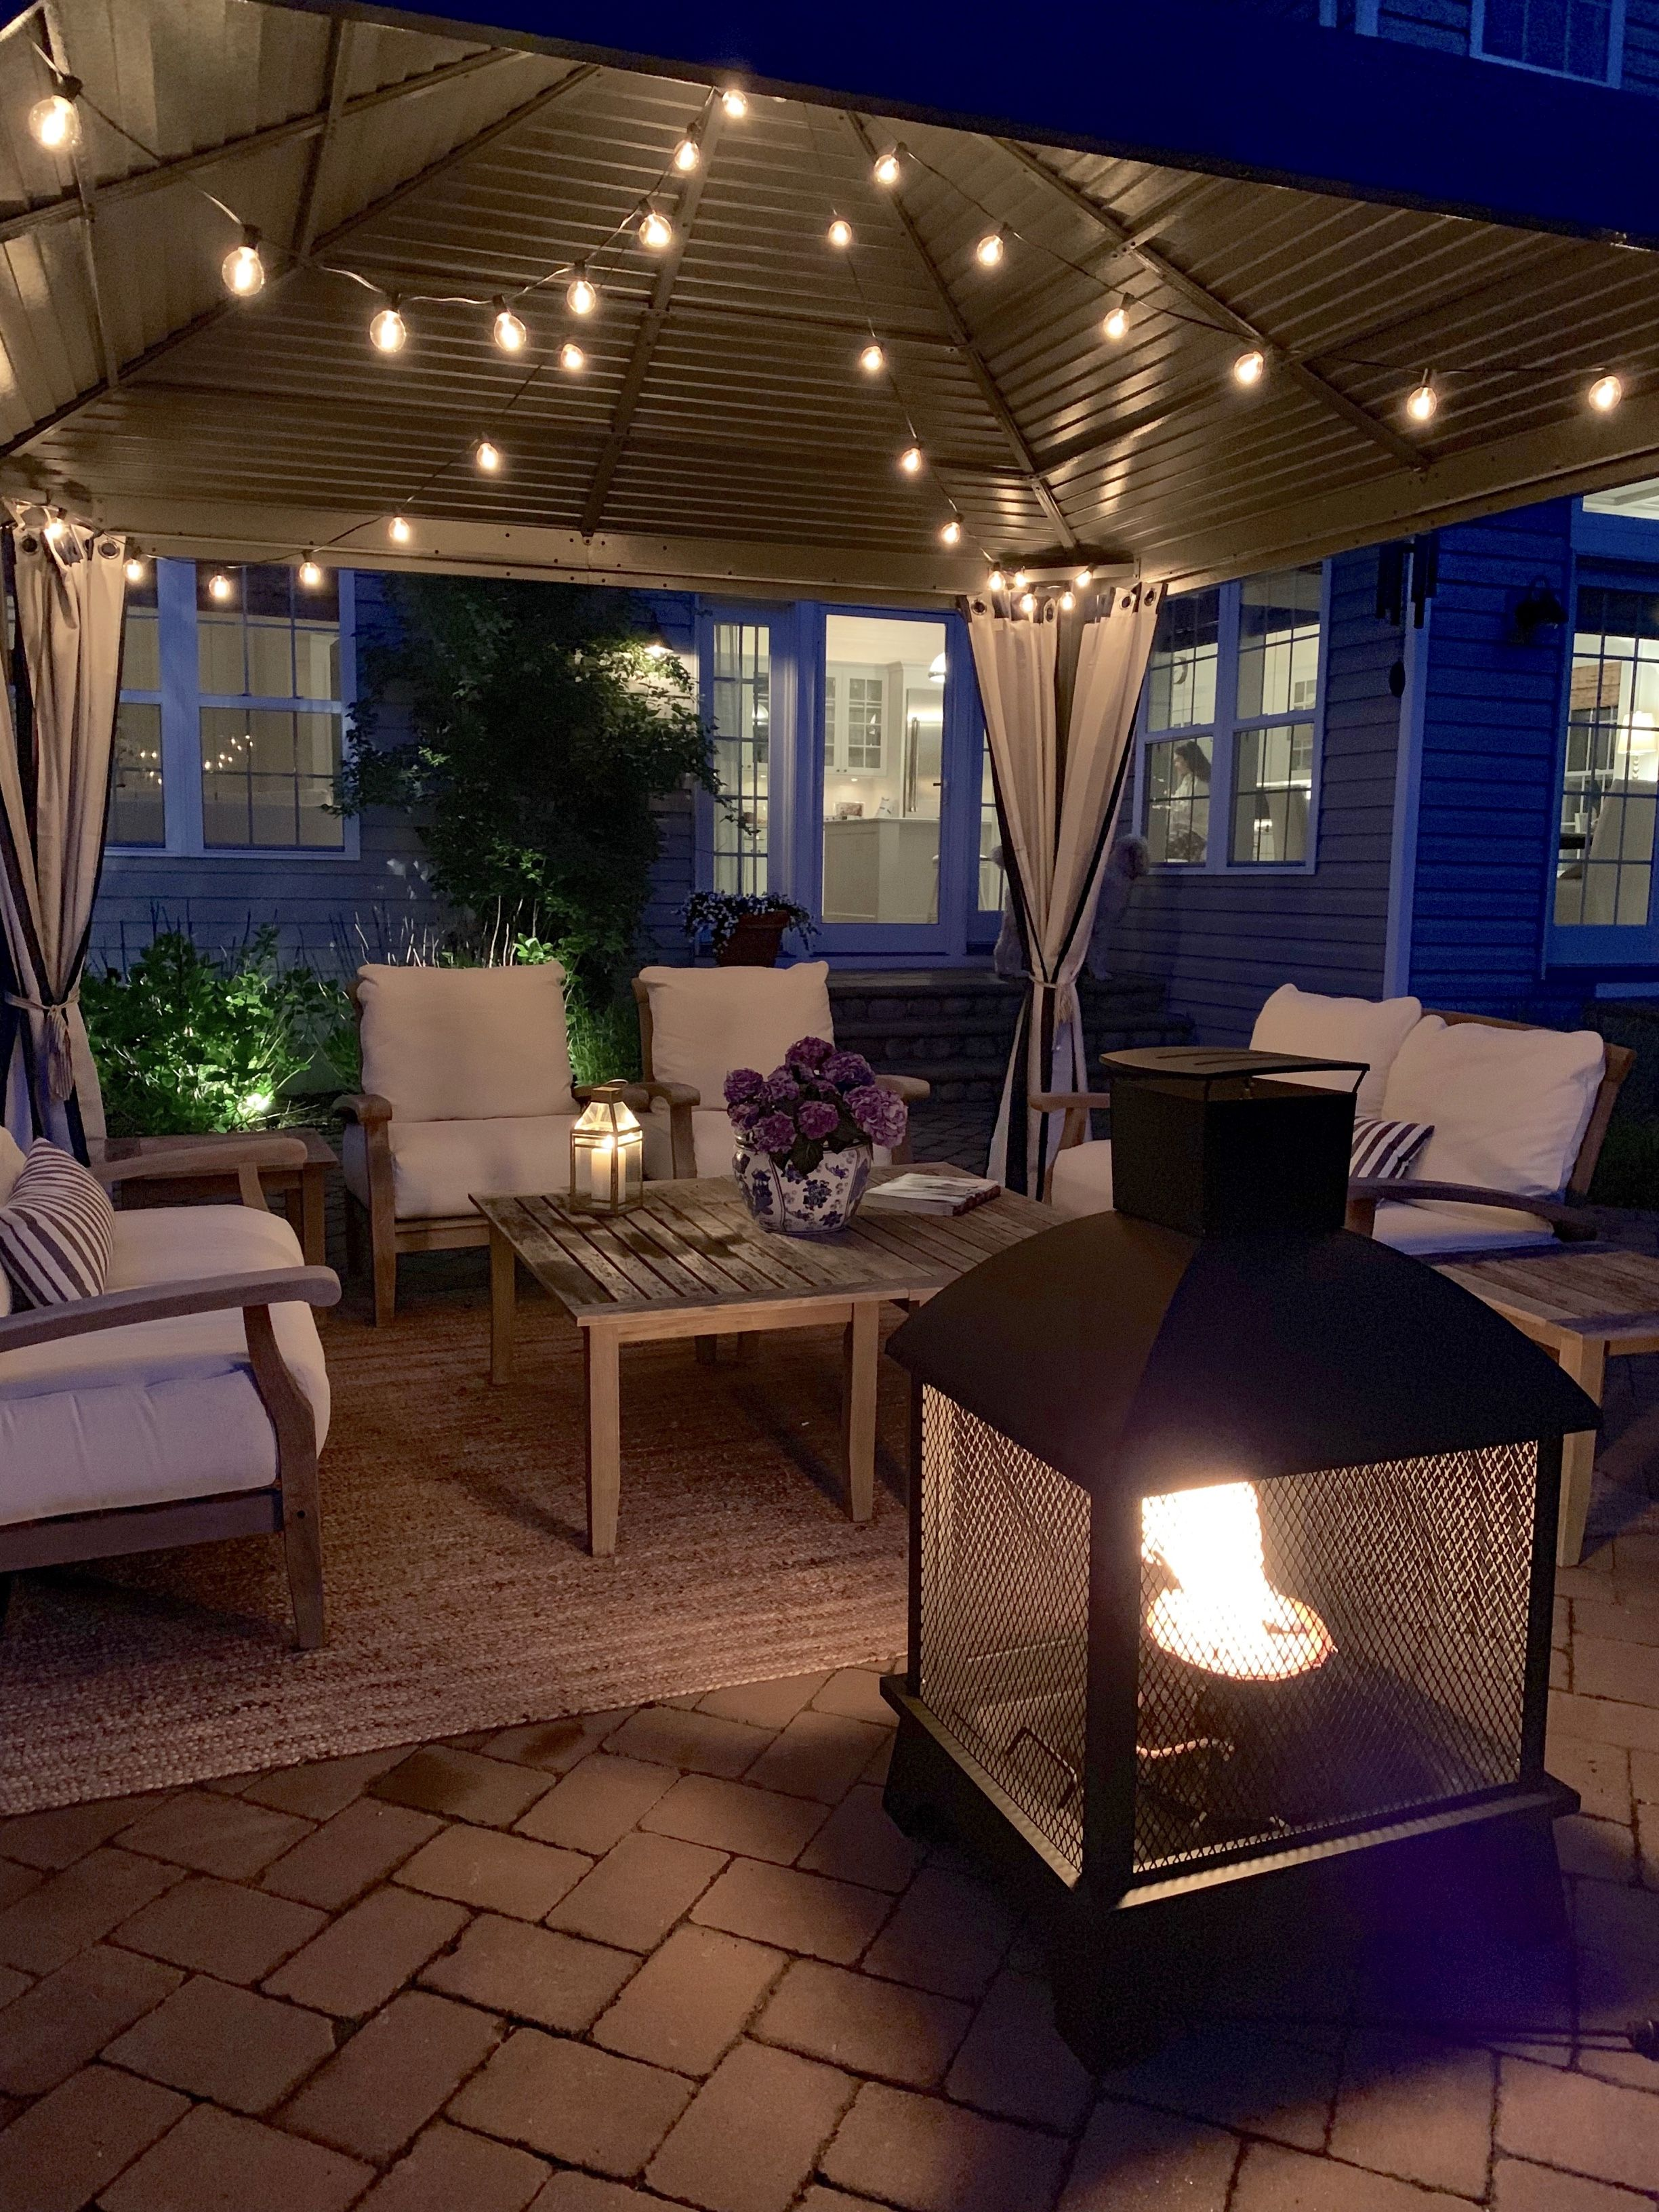 Outdoor Living Room with a SOJAG Gazebo | Gazebo, Outside ... on Ab And Outdoor Living id=60151